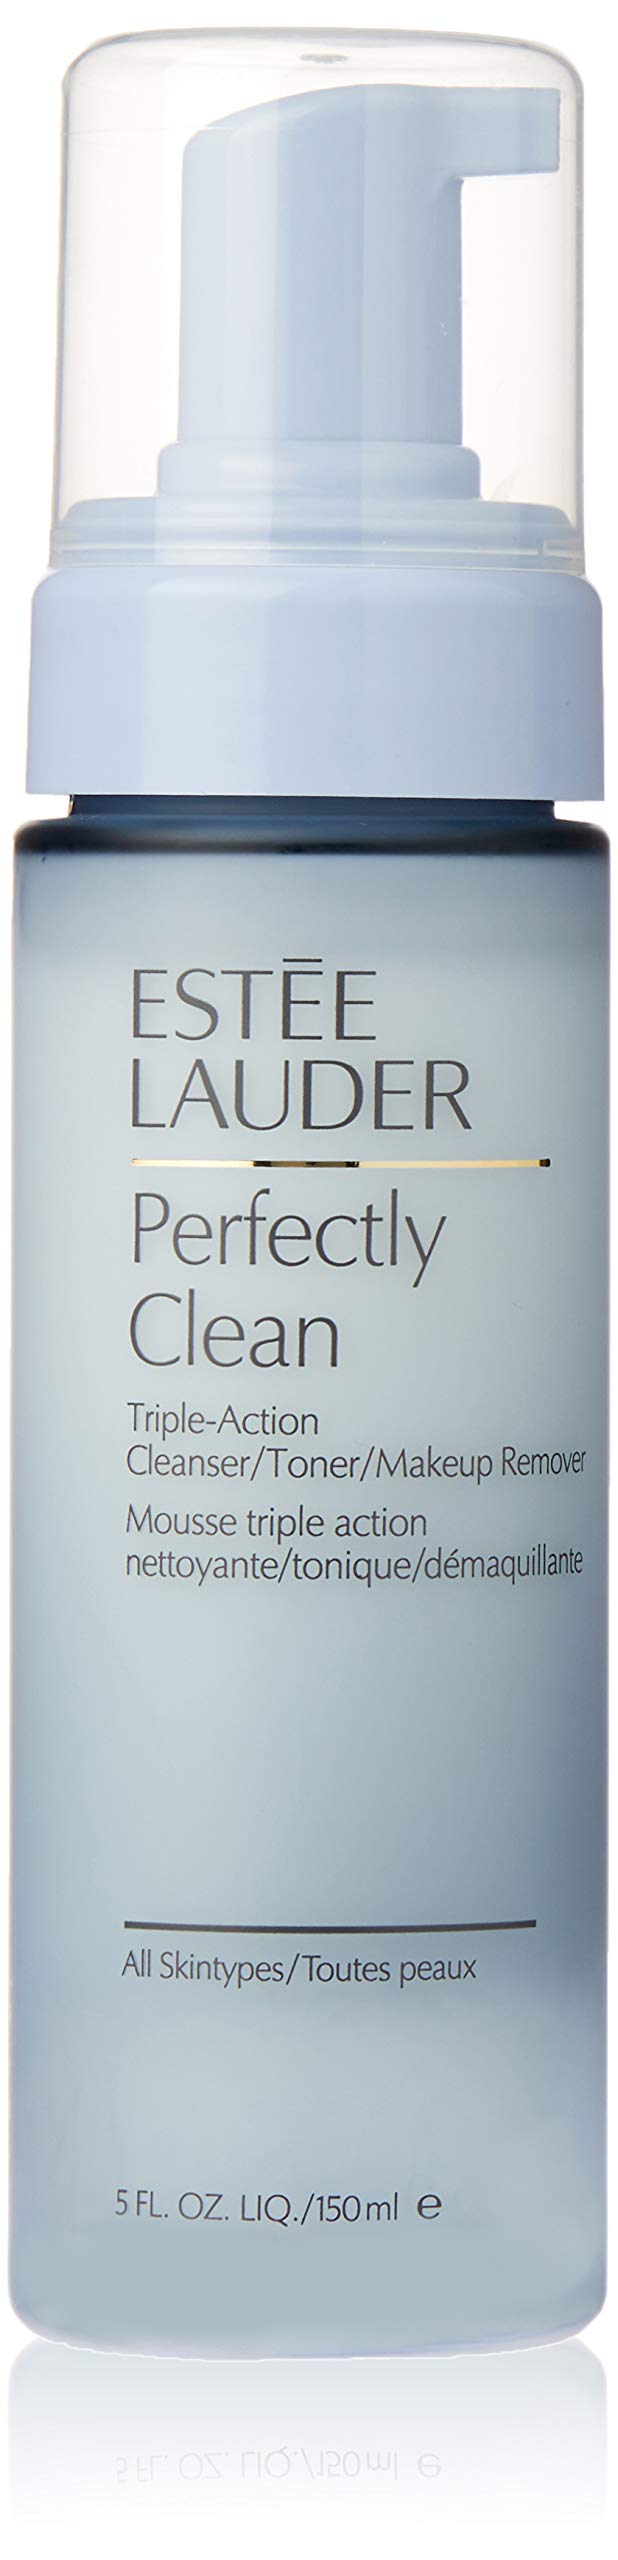 Estee Lauder Perfectly Clean Triple Action Cleanser for Unisex, 5 Ounce by Estee Lauder